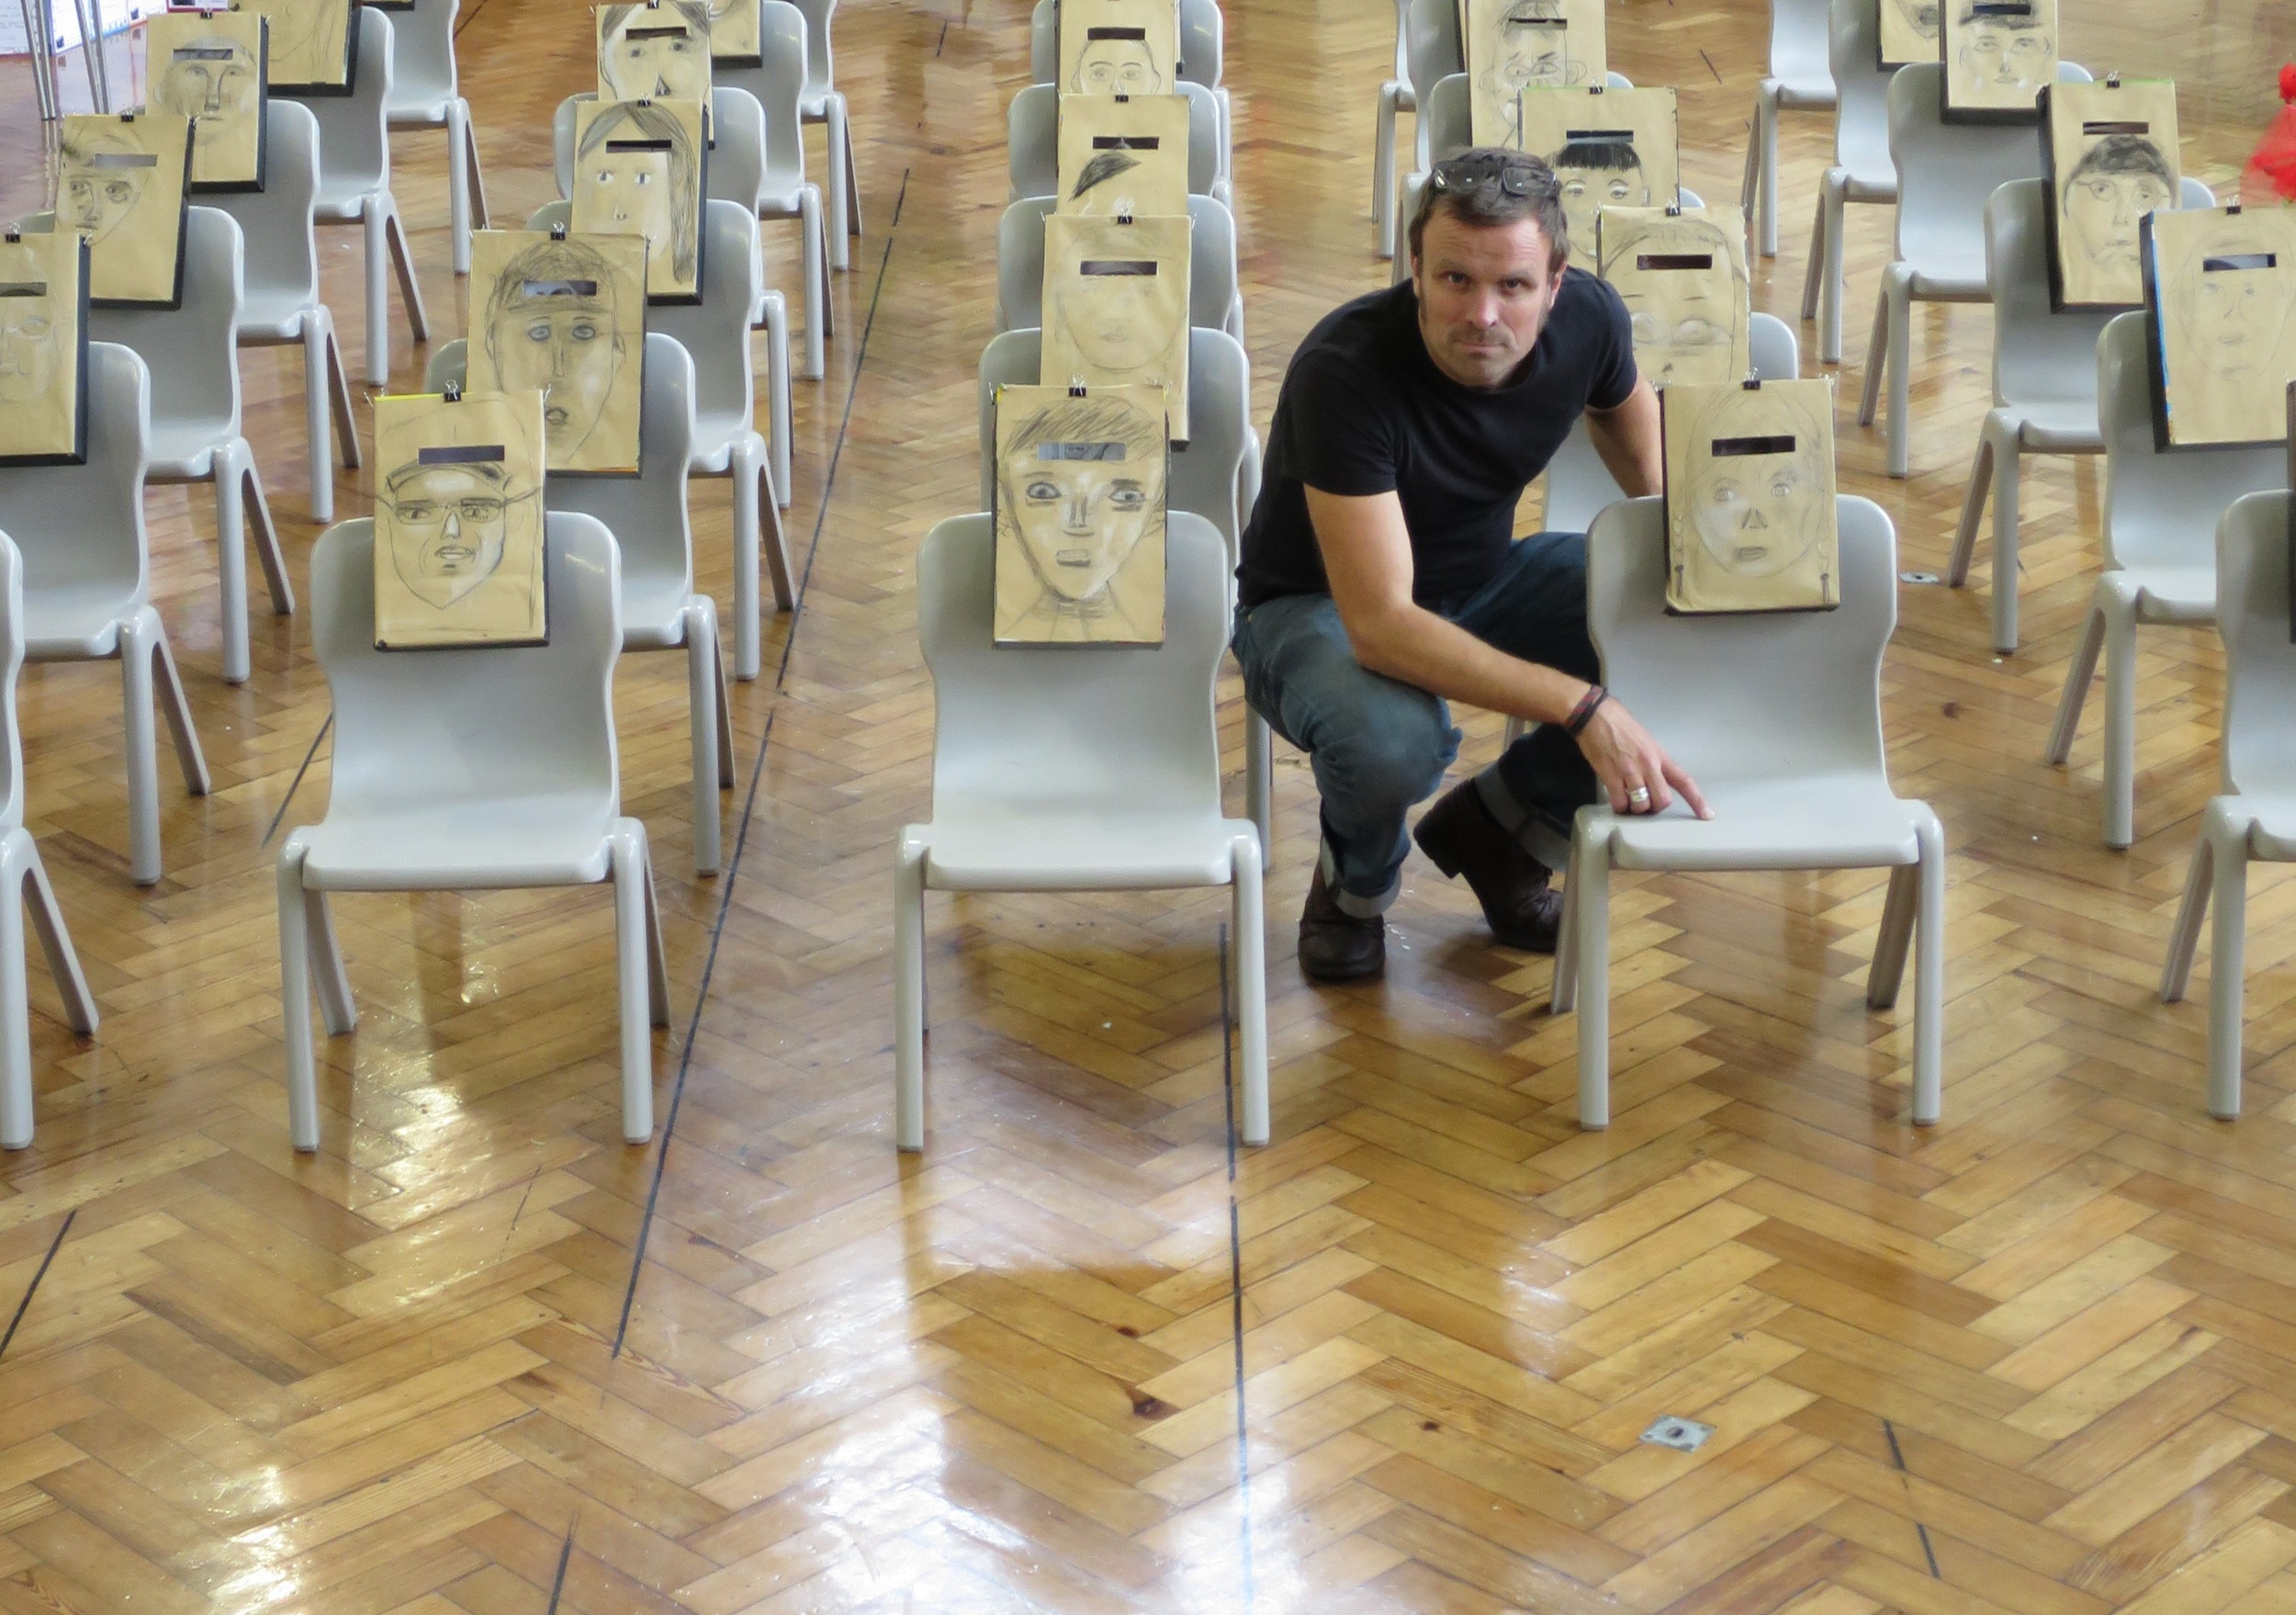 Andy with the installation at Newport Primary School, Leyton.